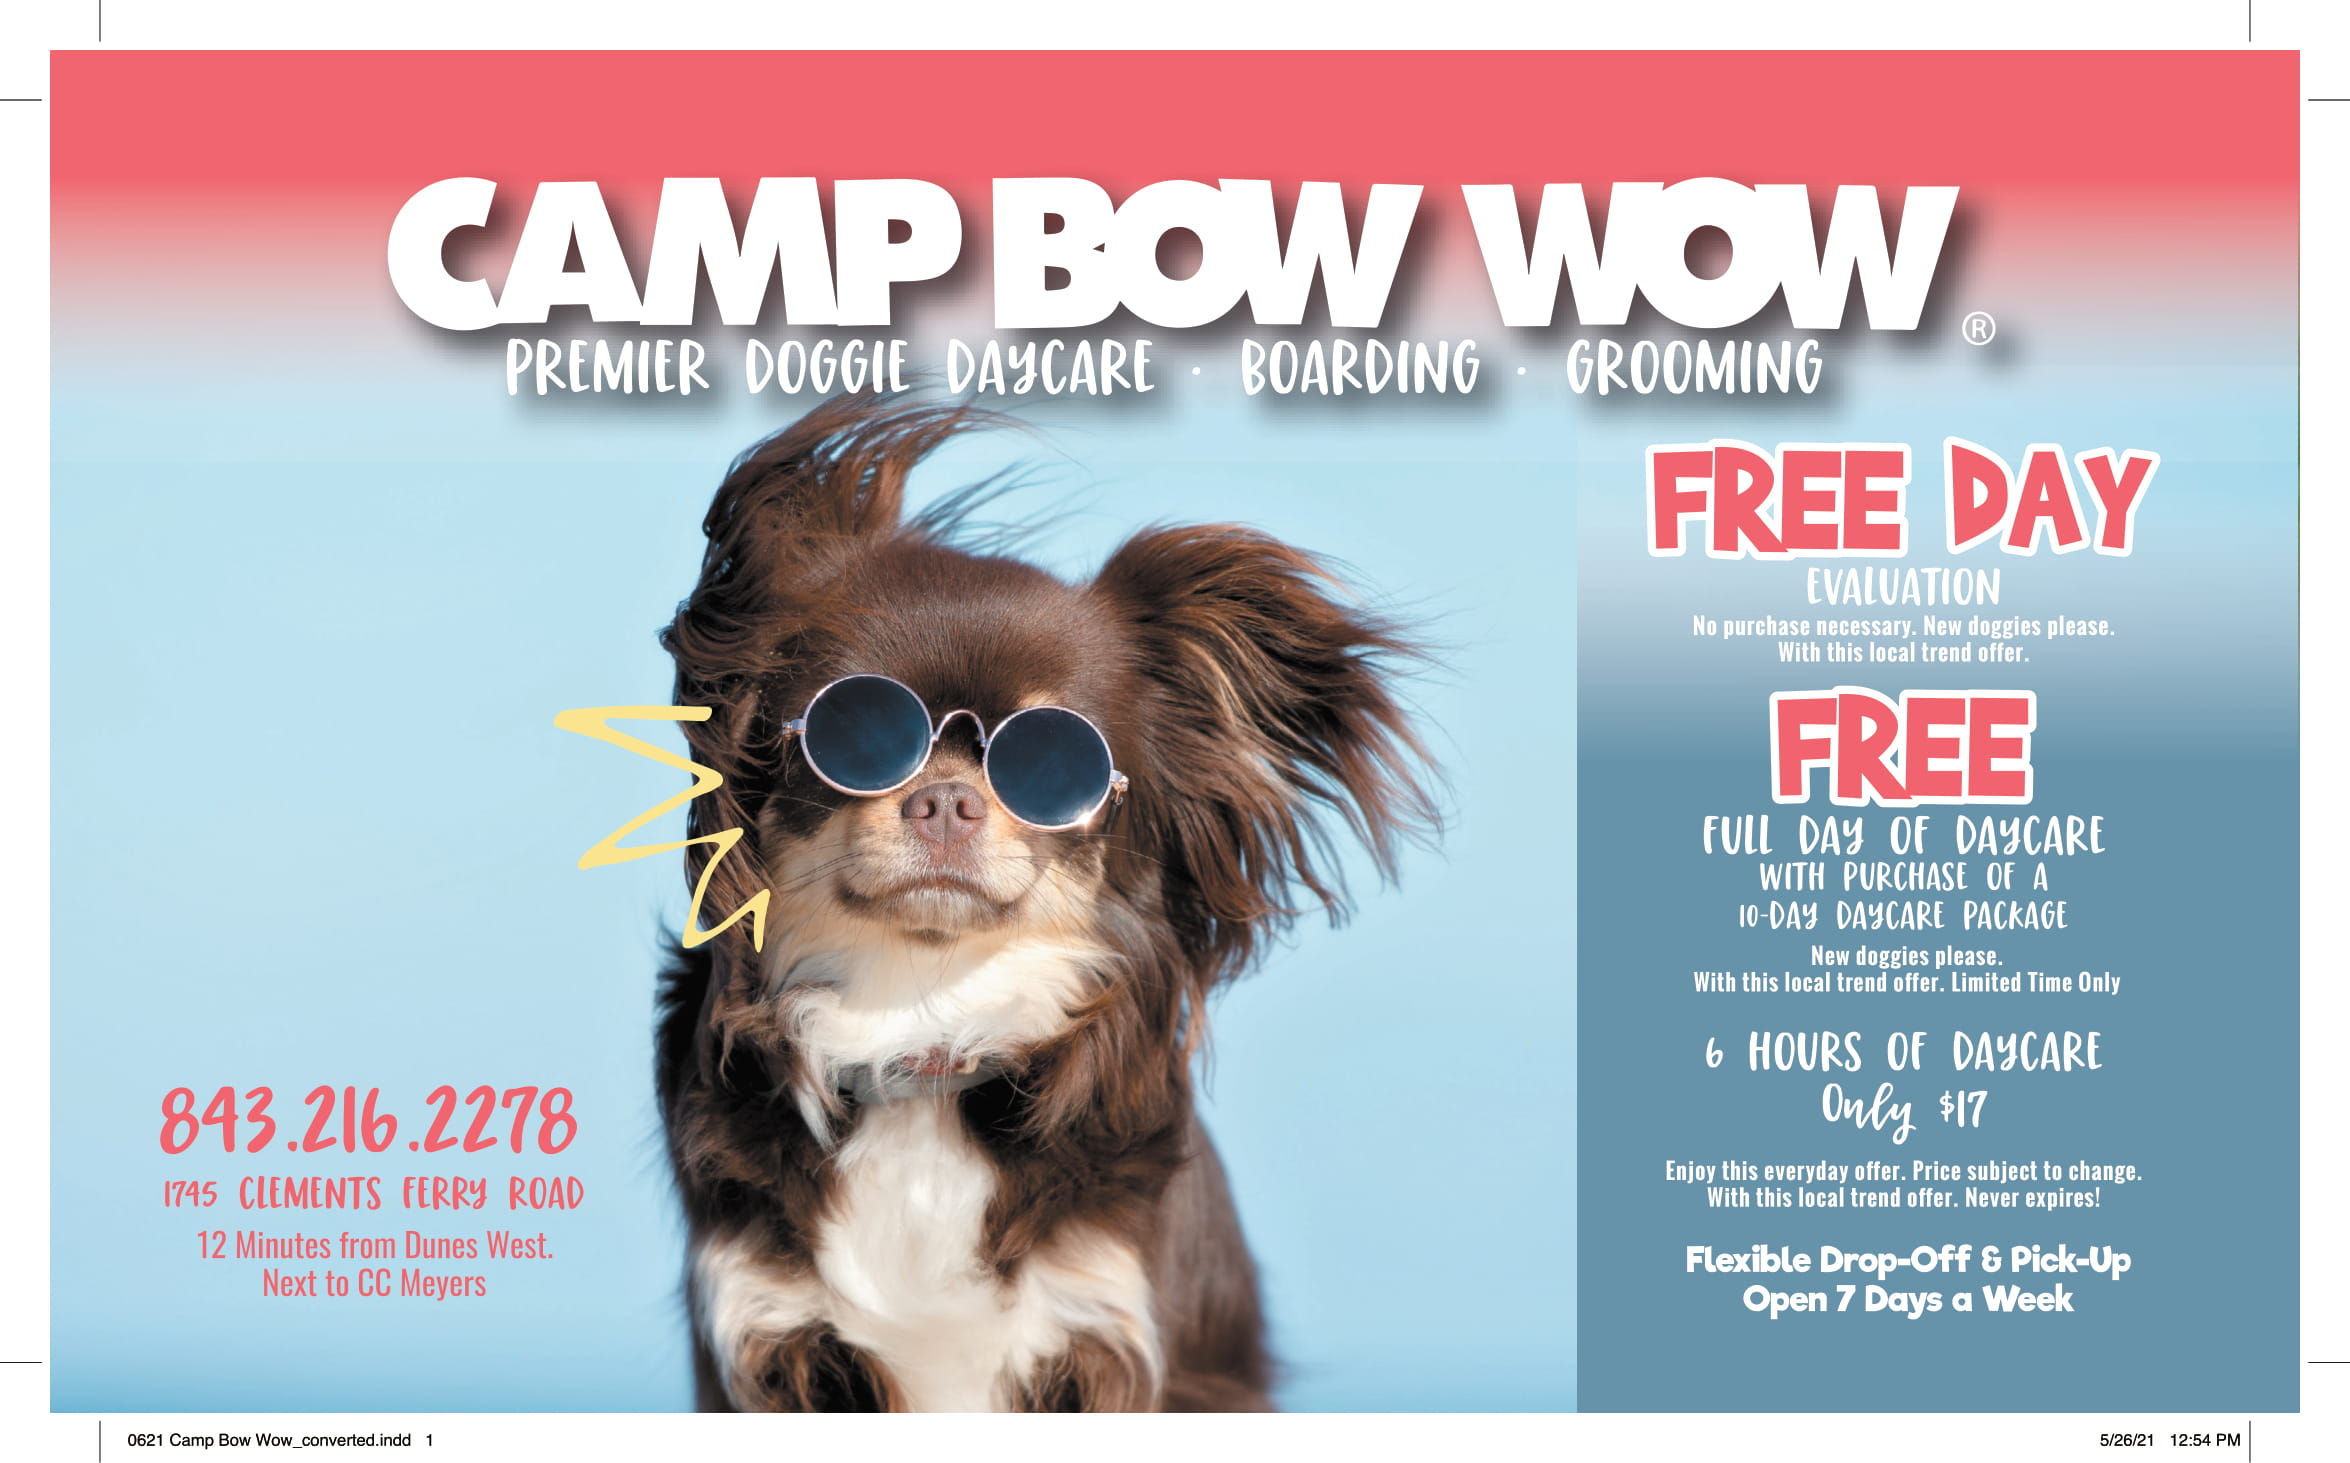 0621 Camp Bow Wow 1